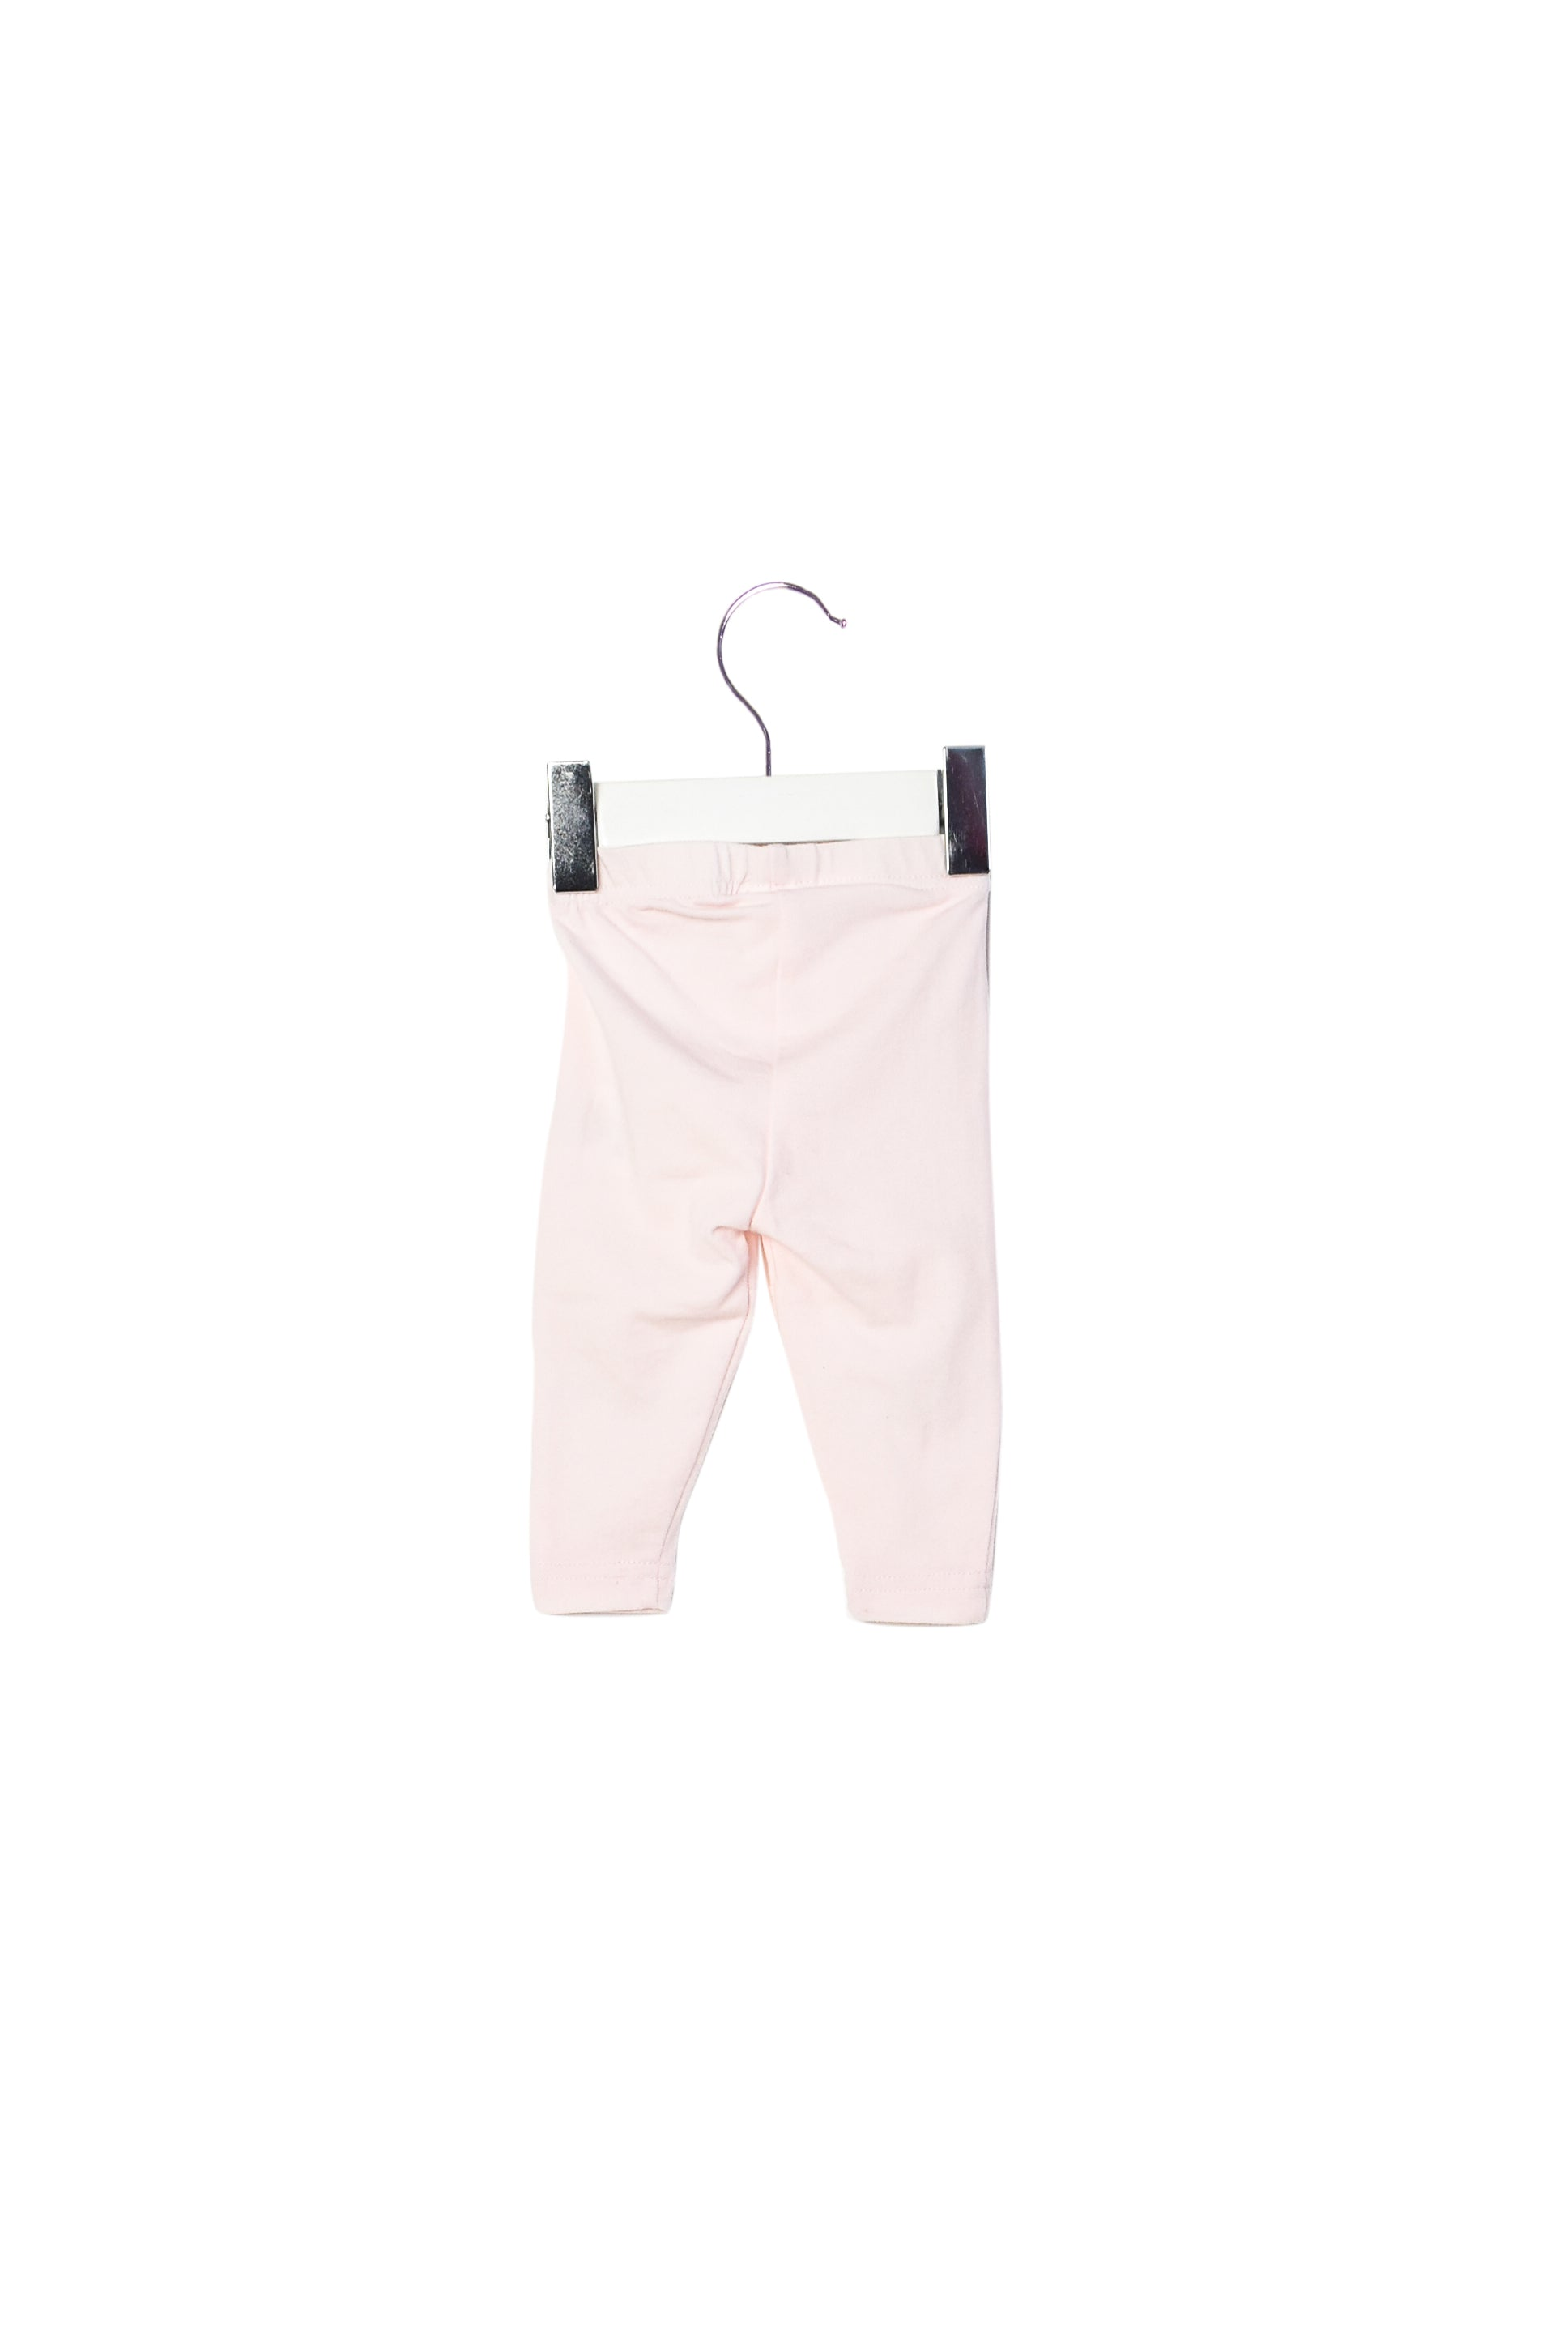 10007691 Seed Baby ~ Pants Newborn at Retykle